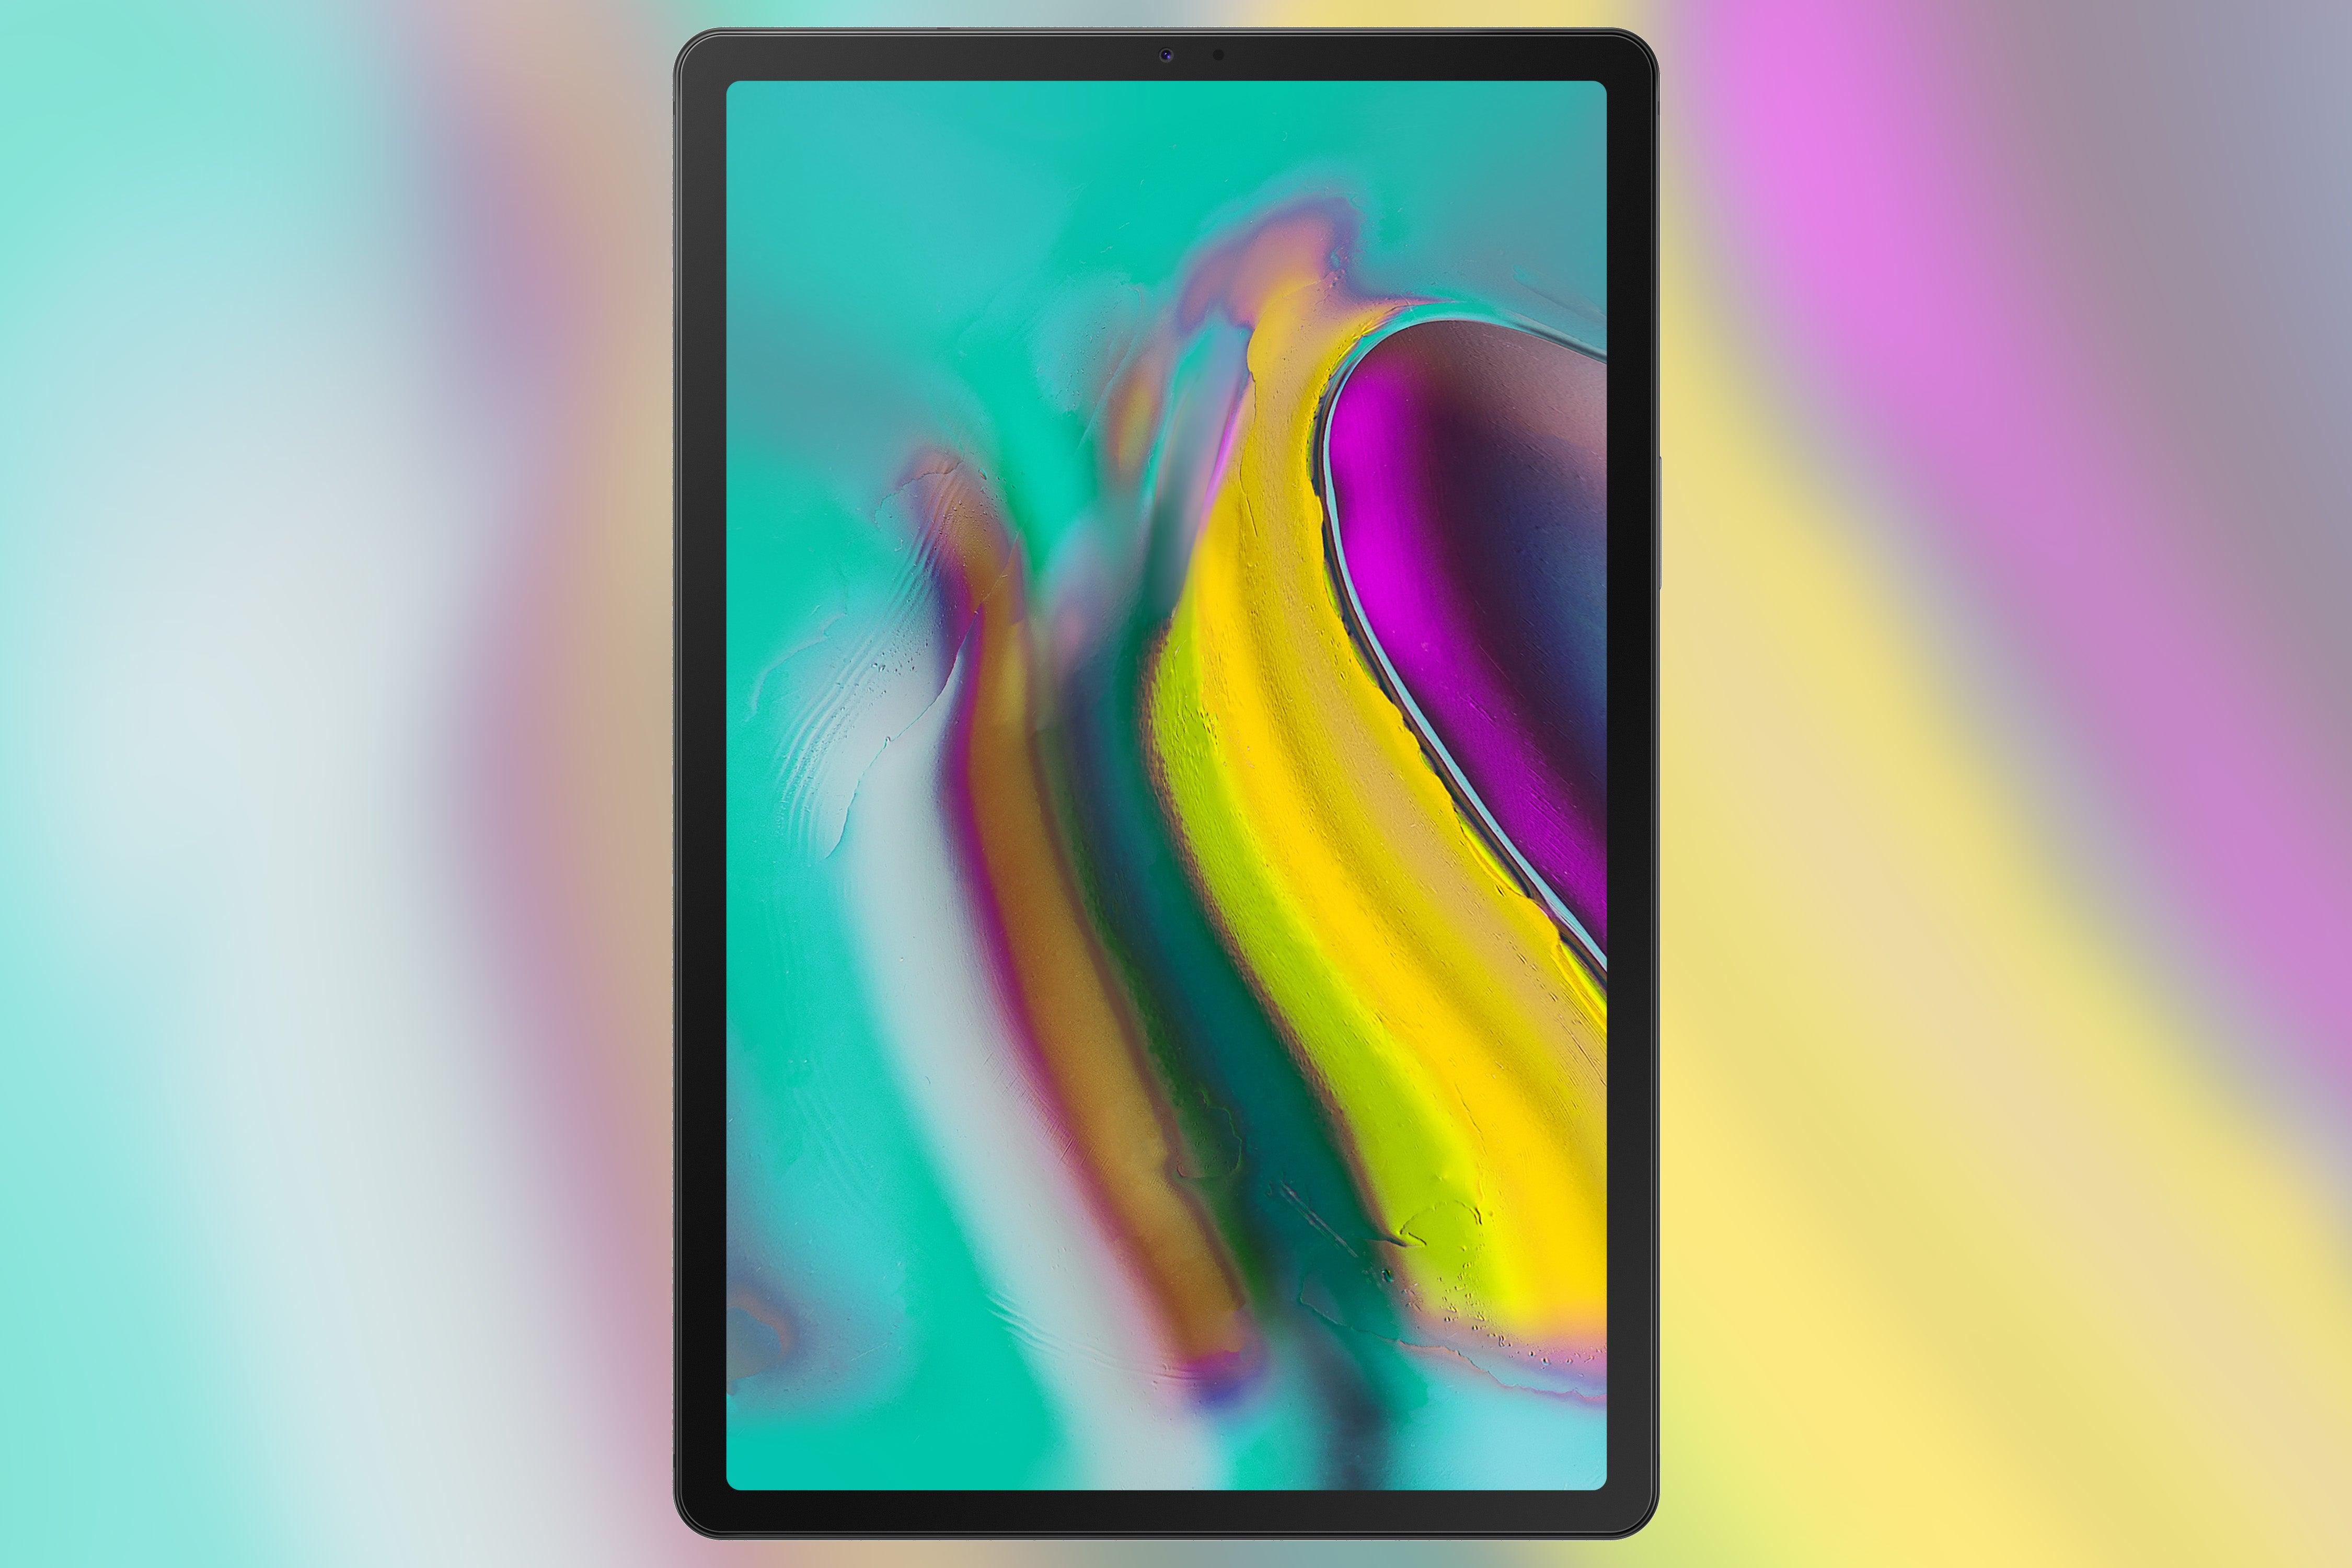 Samsung's just launched a new tablet, days before the Galaxy S10